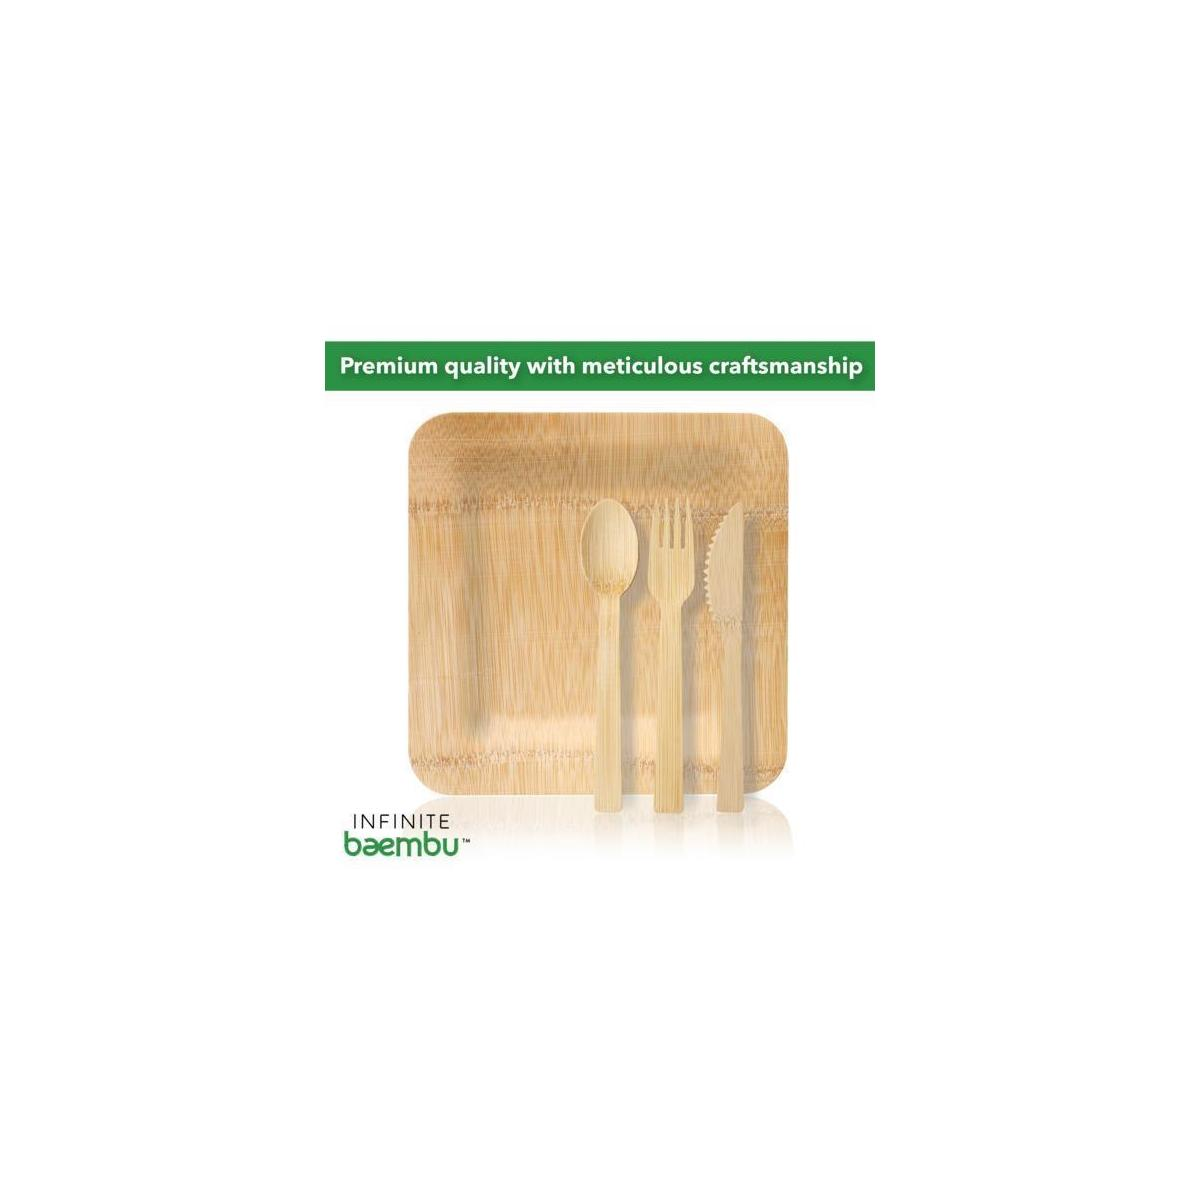 Premium Quality Disposable Bamboo Plates & Bamboo Cutlery Set (25 Plates, 25 Forks, 25 Knives, 25 Spoons) All-Natural, Biodegradable & Compostable | Elegant Dinnerware for Holidays & Upscale Events